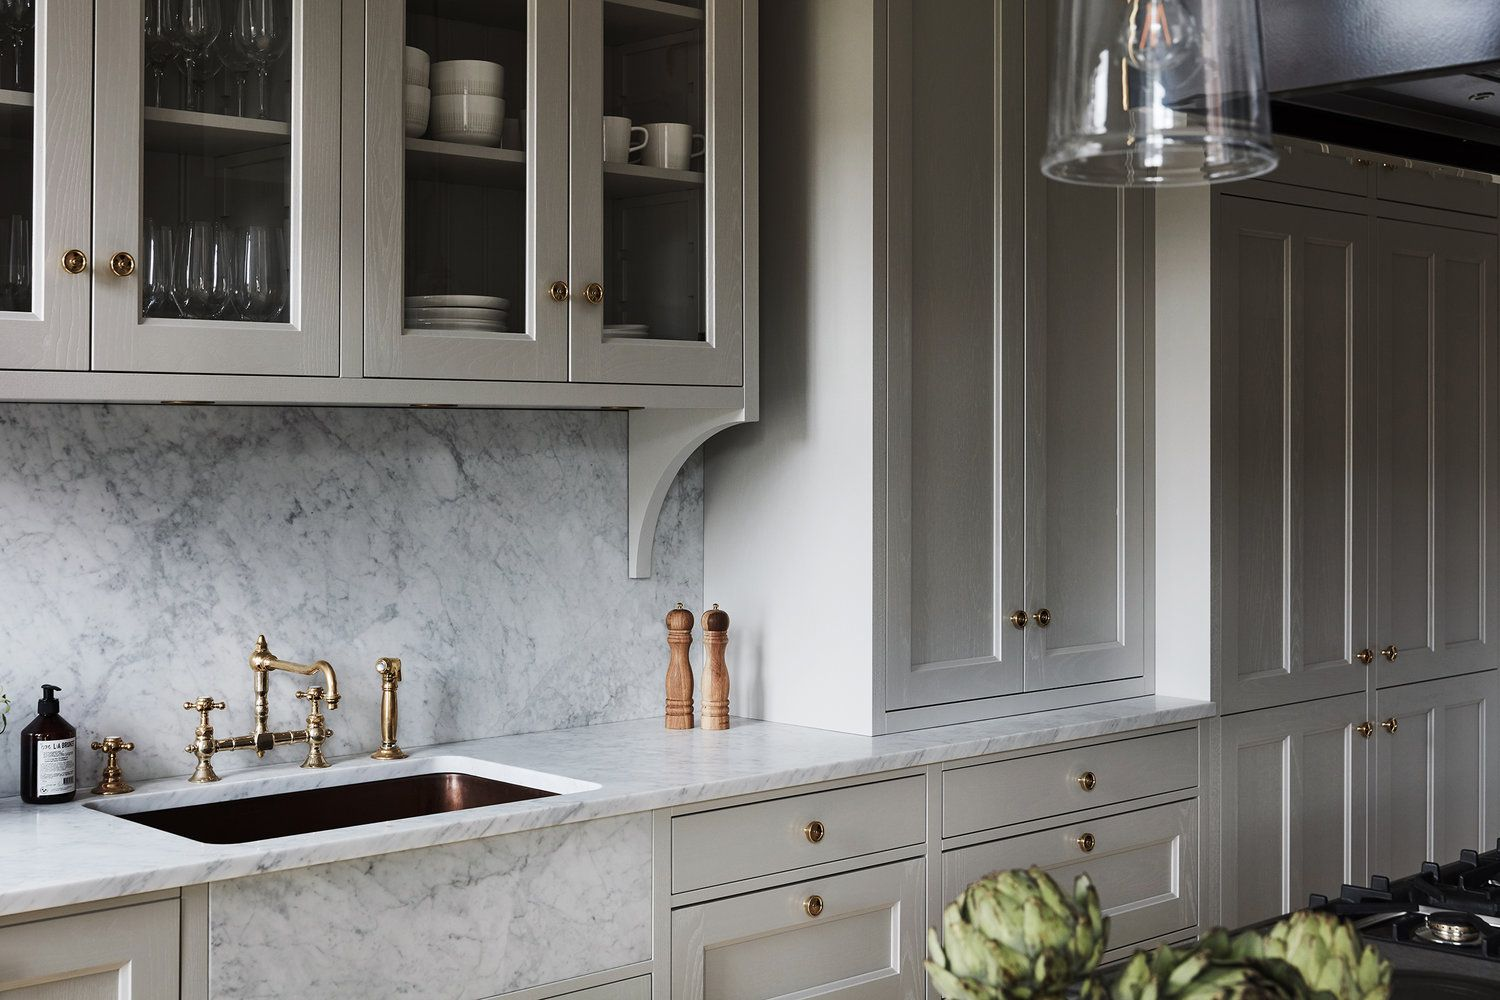 8 Great Neutral Cabinet Colors For Kitchens The Grit And Polish In 2020 Kitchen Style Kitchen Renovation Neutral Cabinets